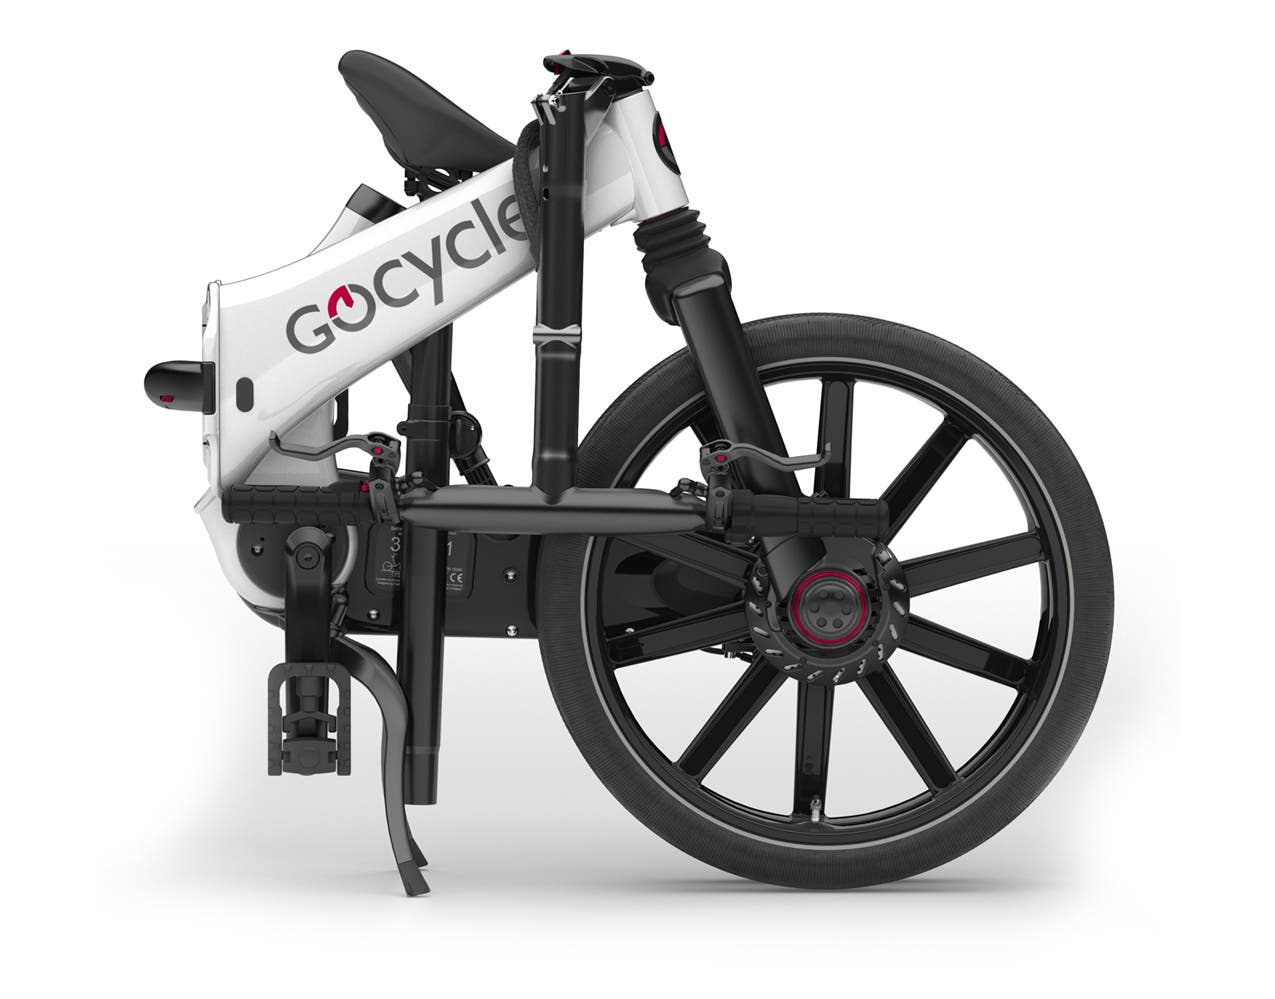 The Gocycle GX Is The Ultimate Lightweight Folding eBike